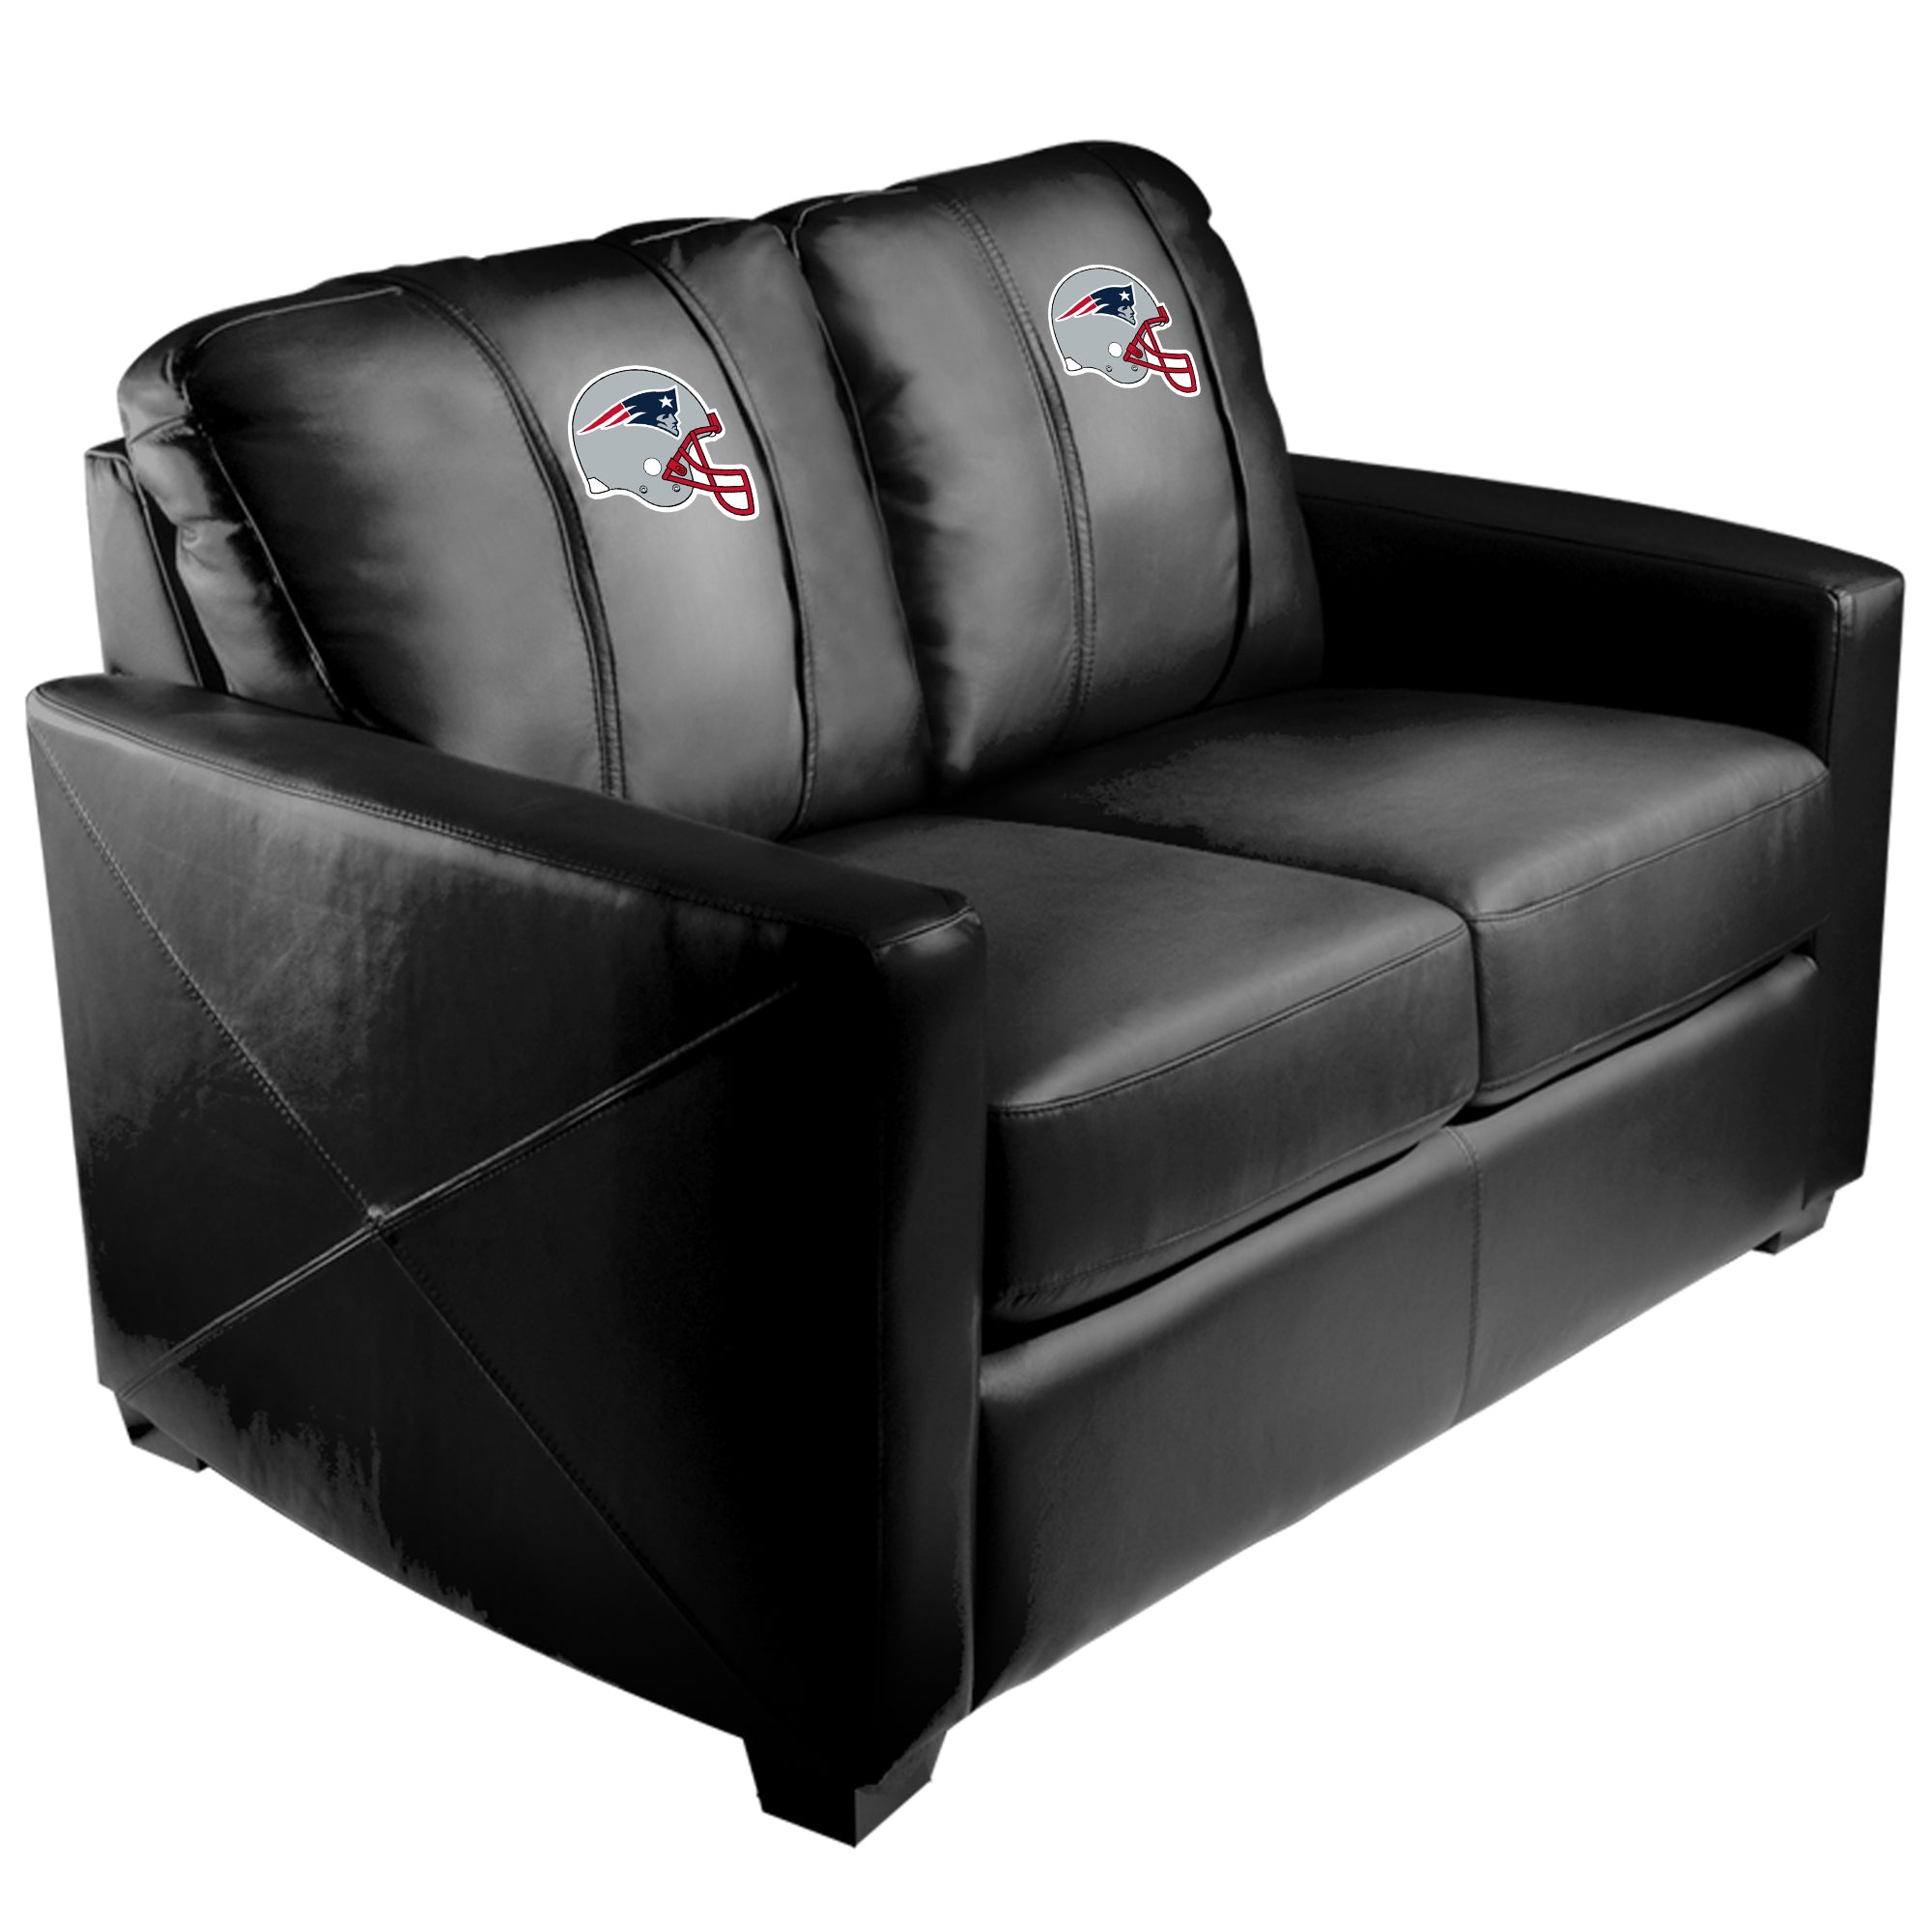 Silver Loveseat with  New England Patriots Helmet Logo